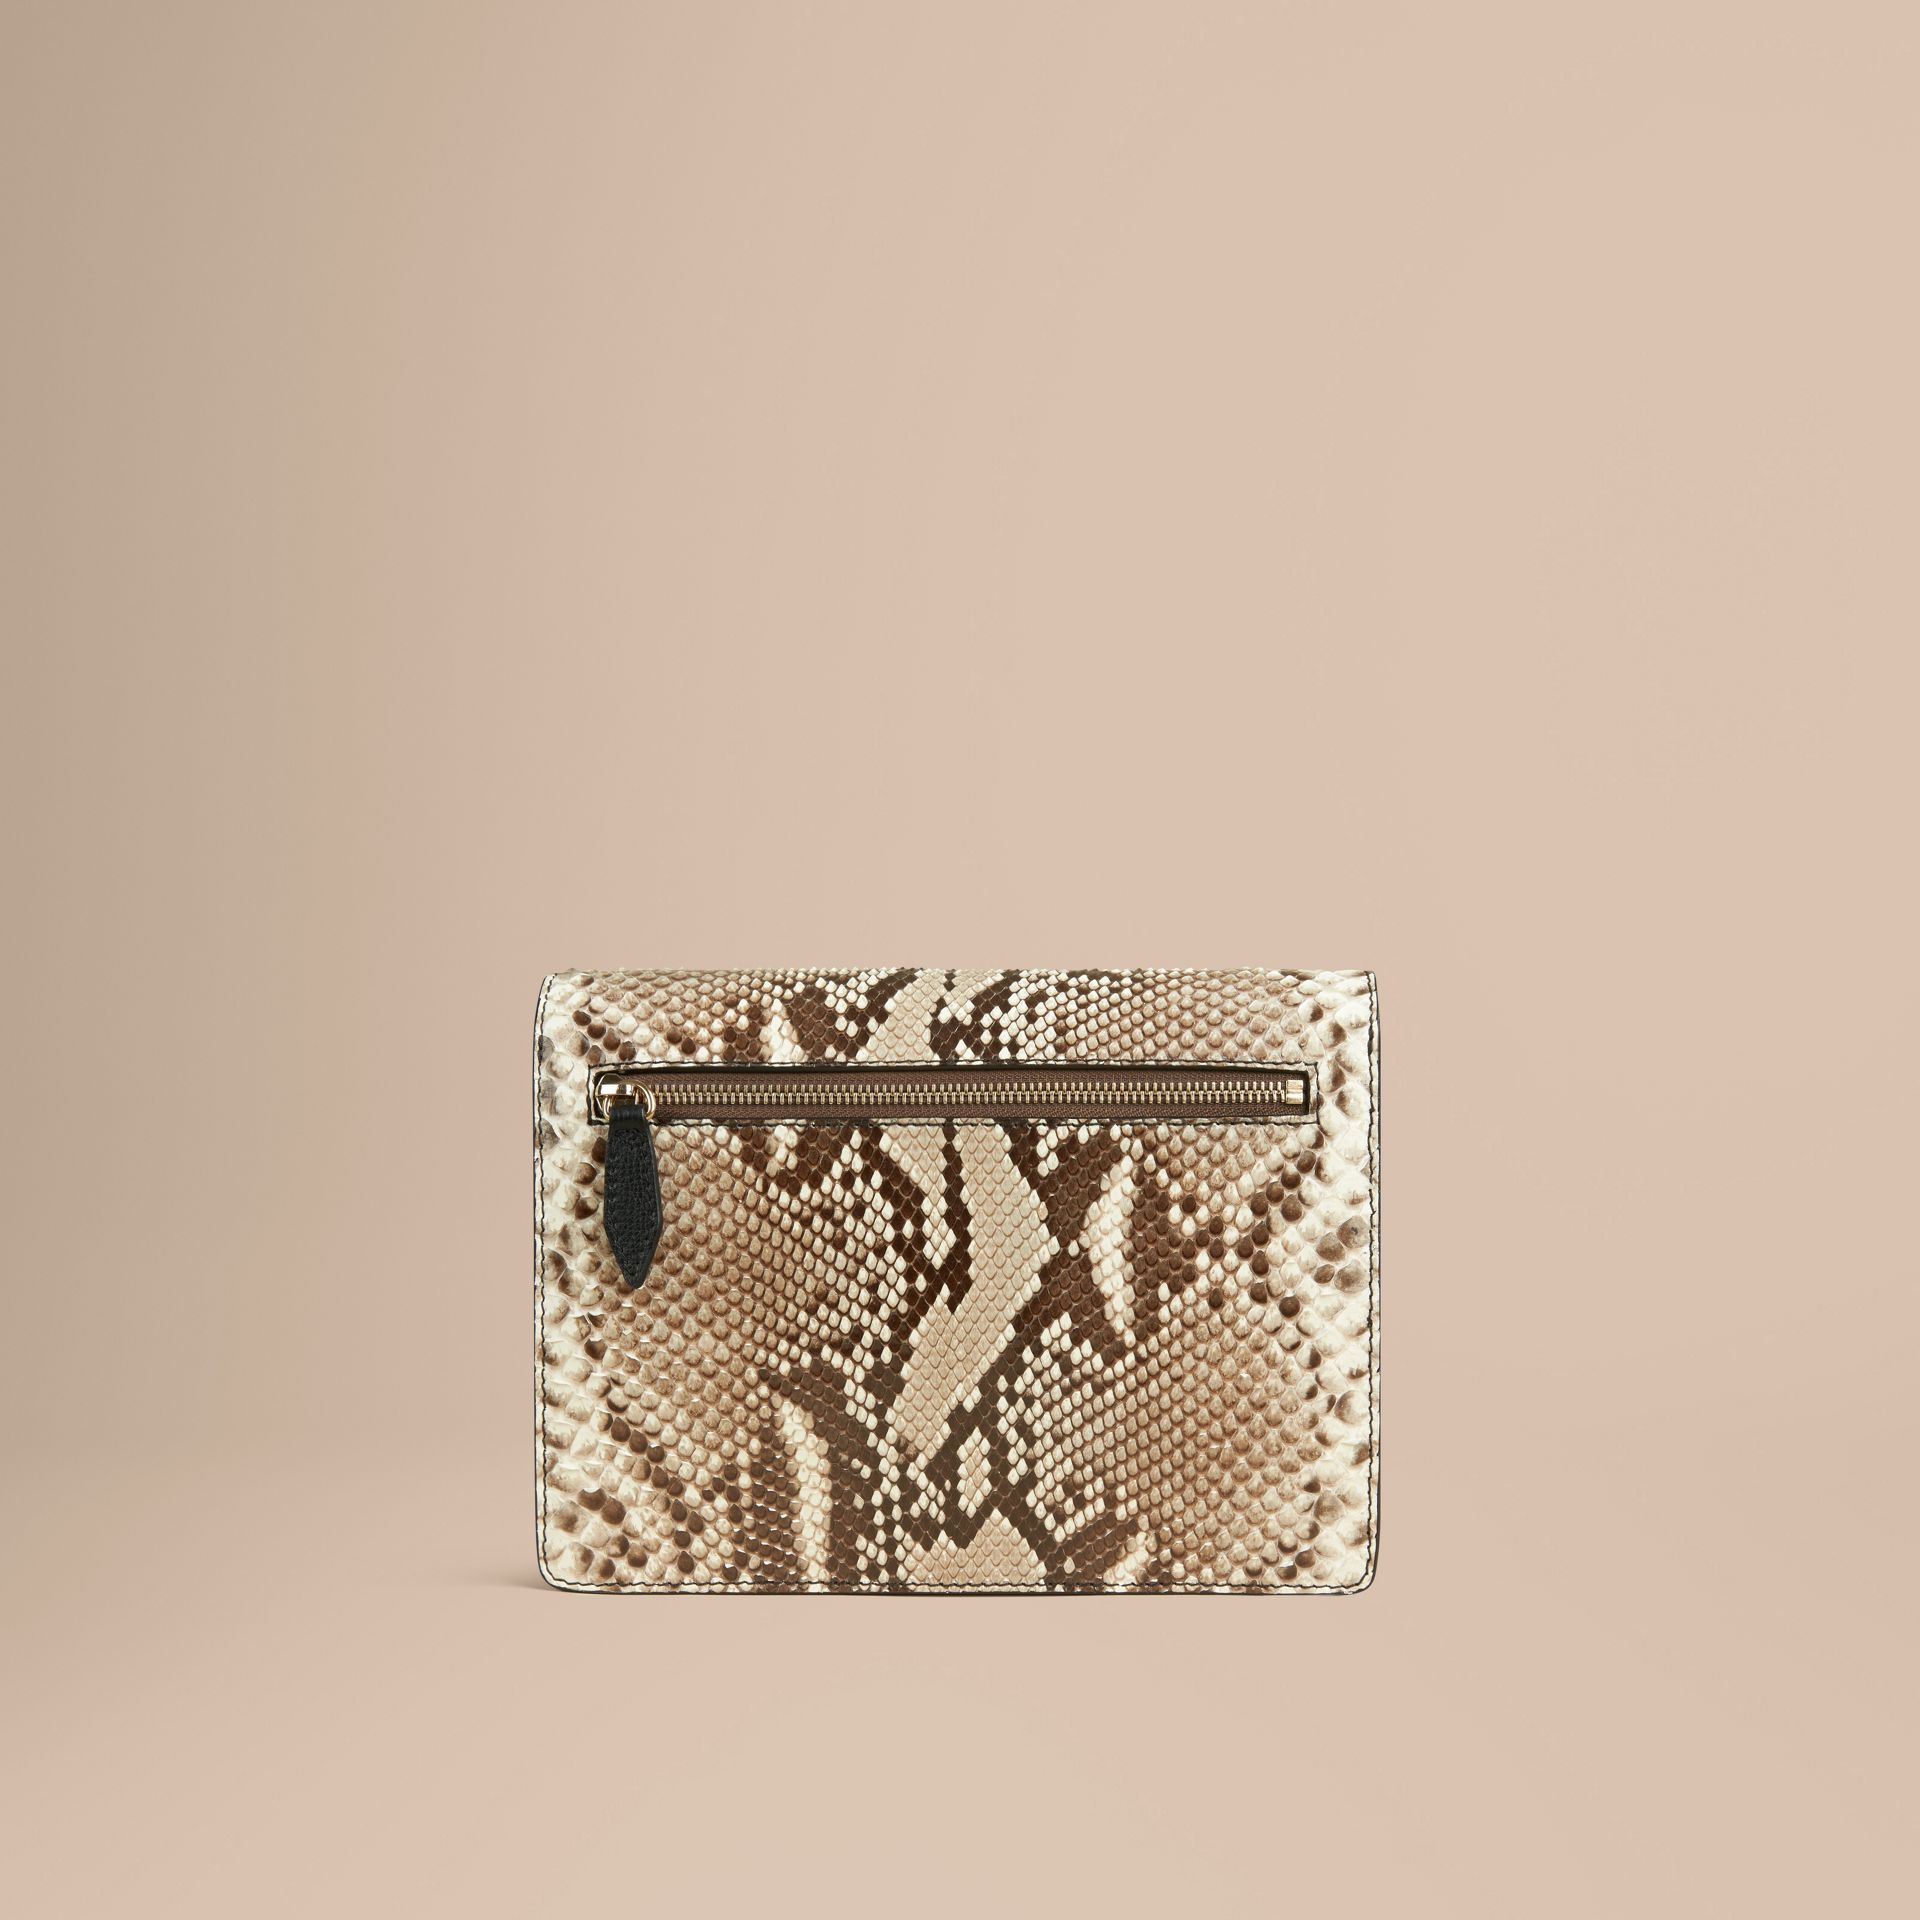 Small Python Crossbody Bag in Natural - Women | Burberry Canada - gallery image 4